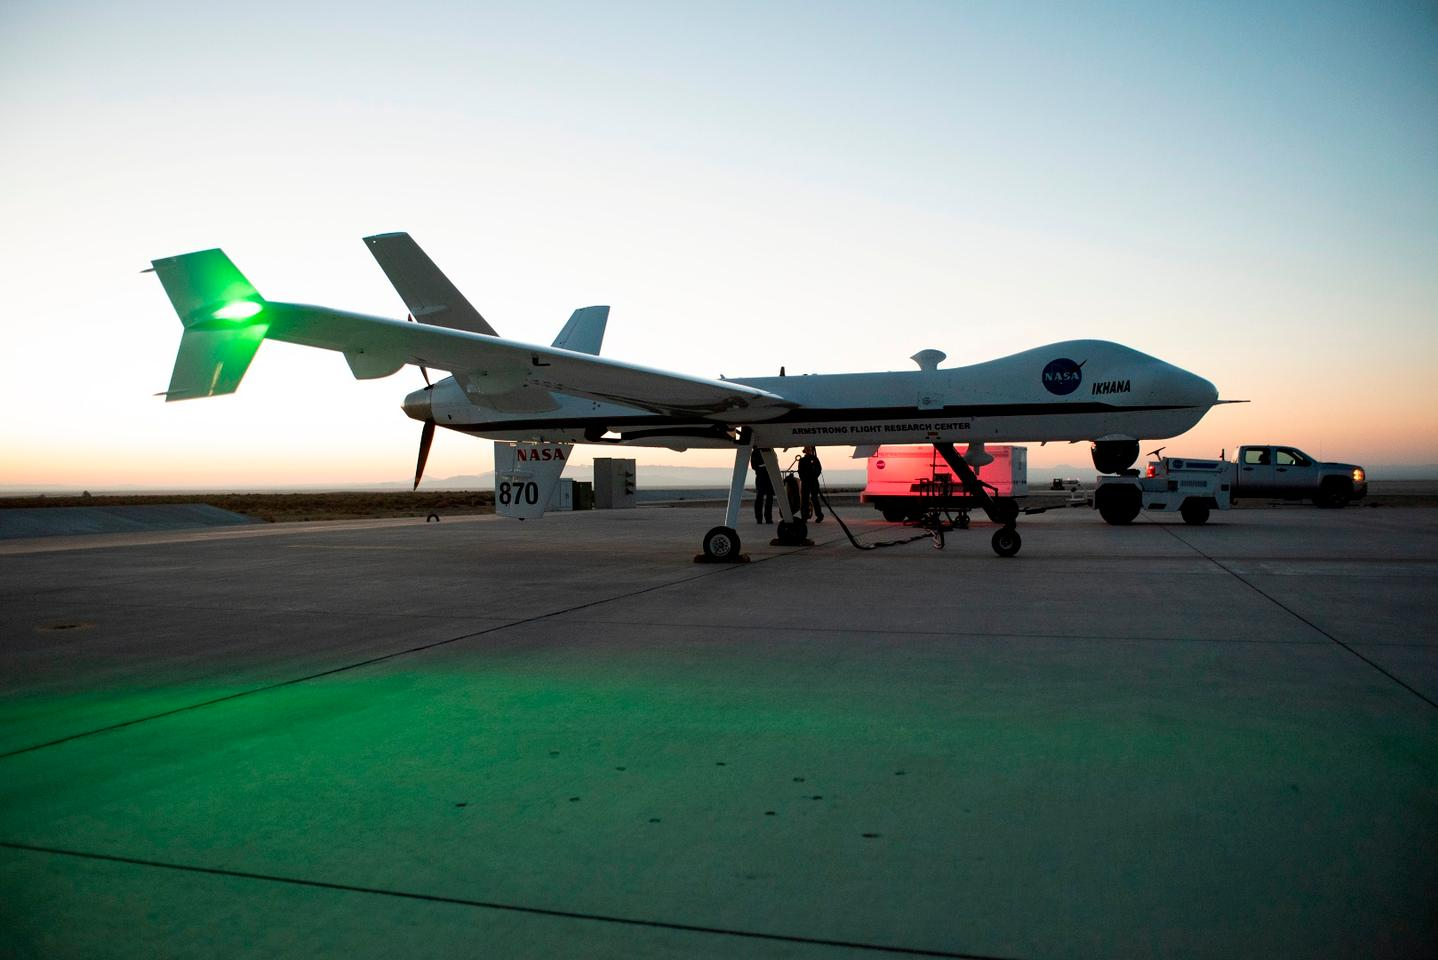 Aircraft maintenance crews at NASA's Armstrong Flight Research Center prepare the remotely-piloted Ikhana aircraft for a test flight June 12, 2018